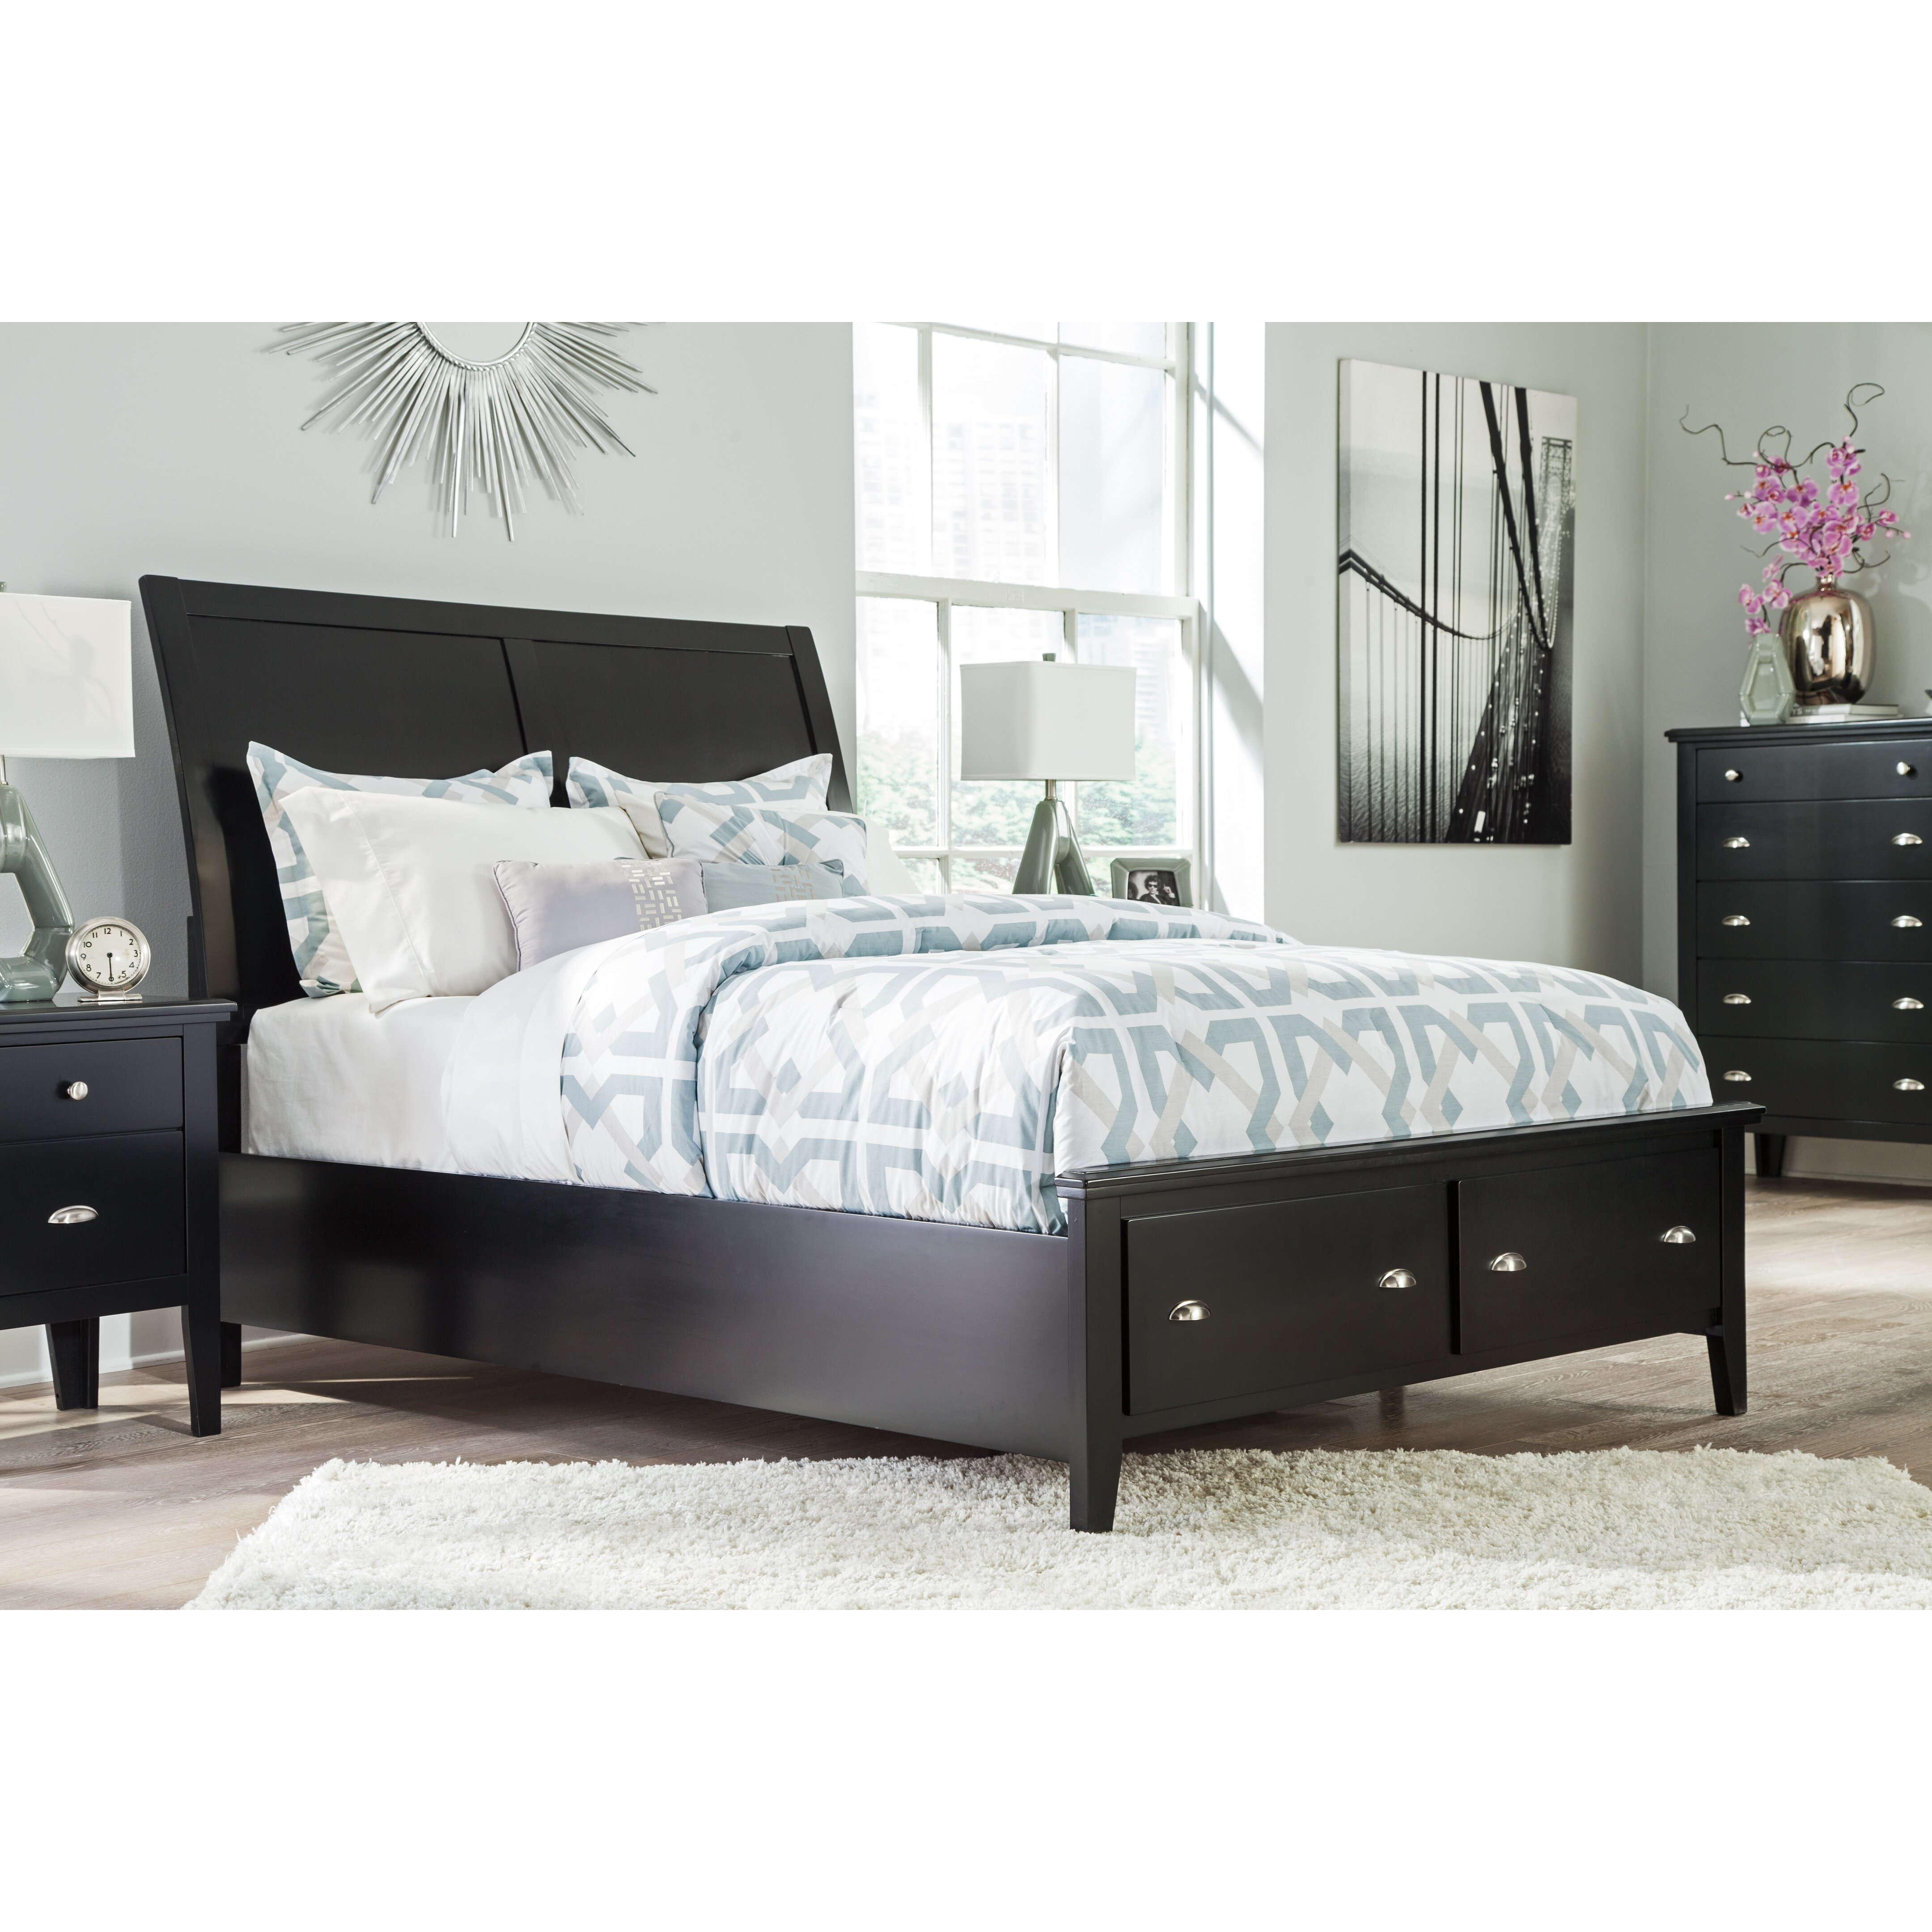 Signature bedroom furniture